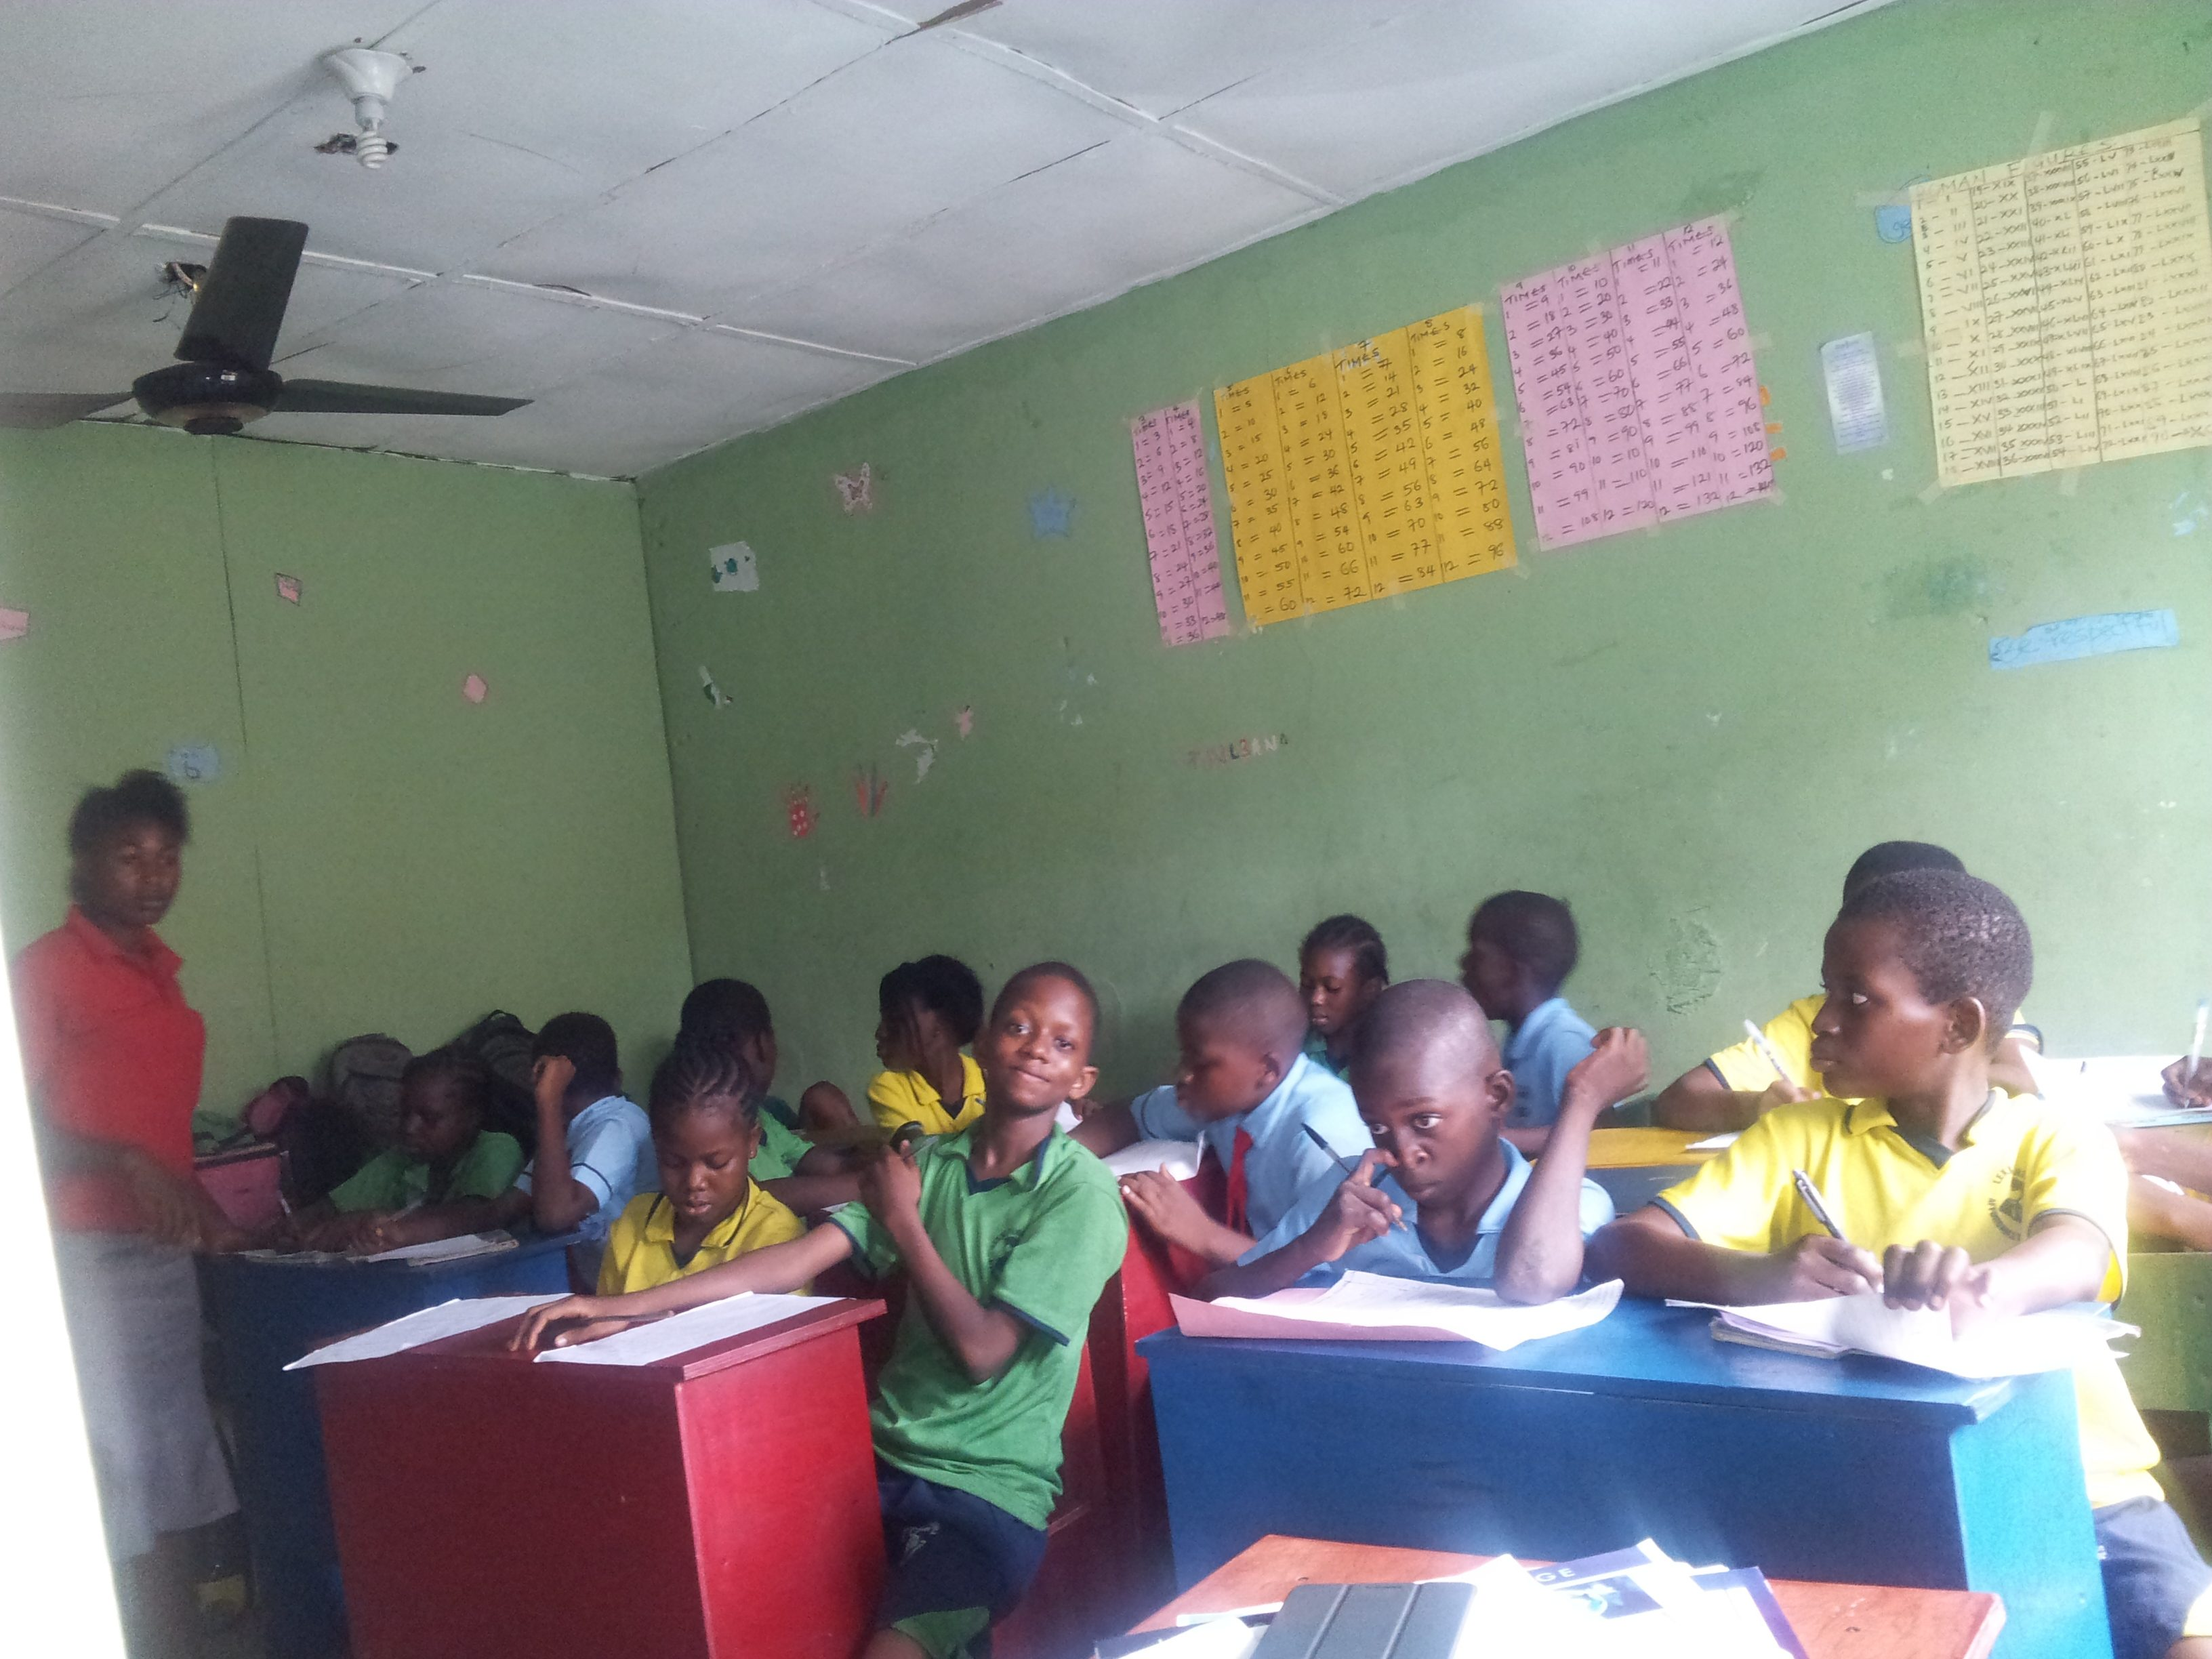 Students studying in the Lekki School classroom.